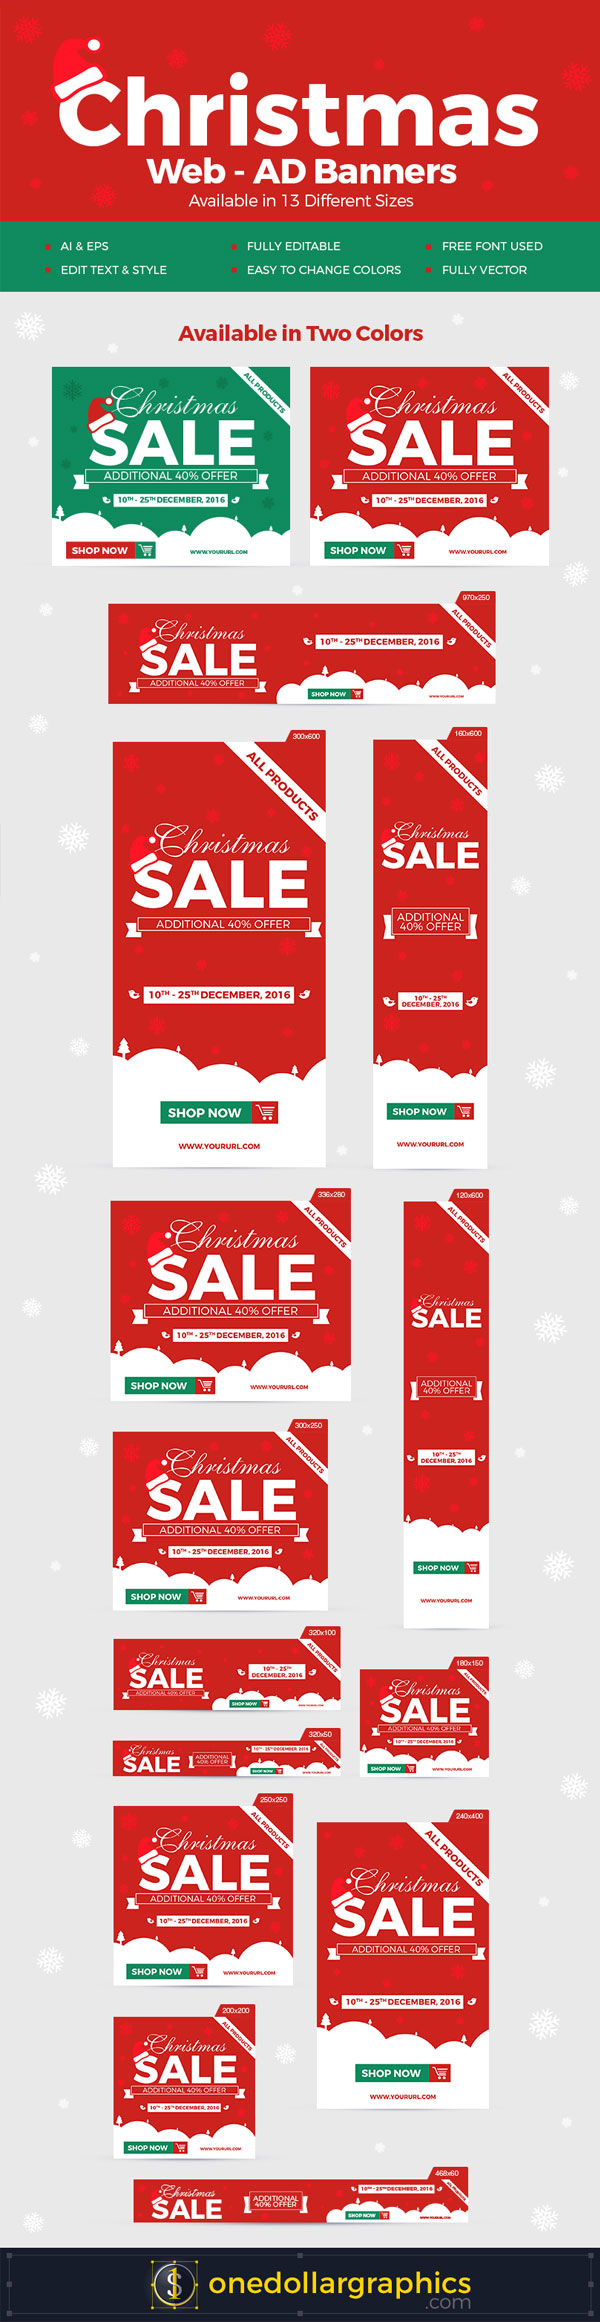 free-christmas-web-ad-banners-in-vector-ai-in-red-green-colors